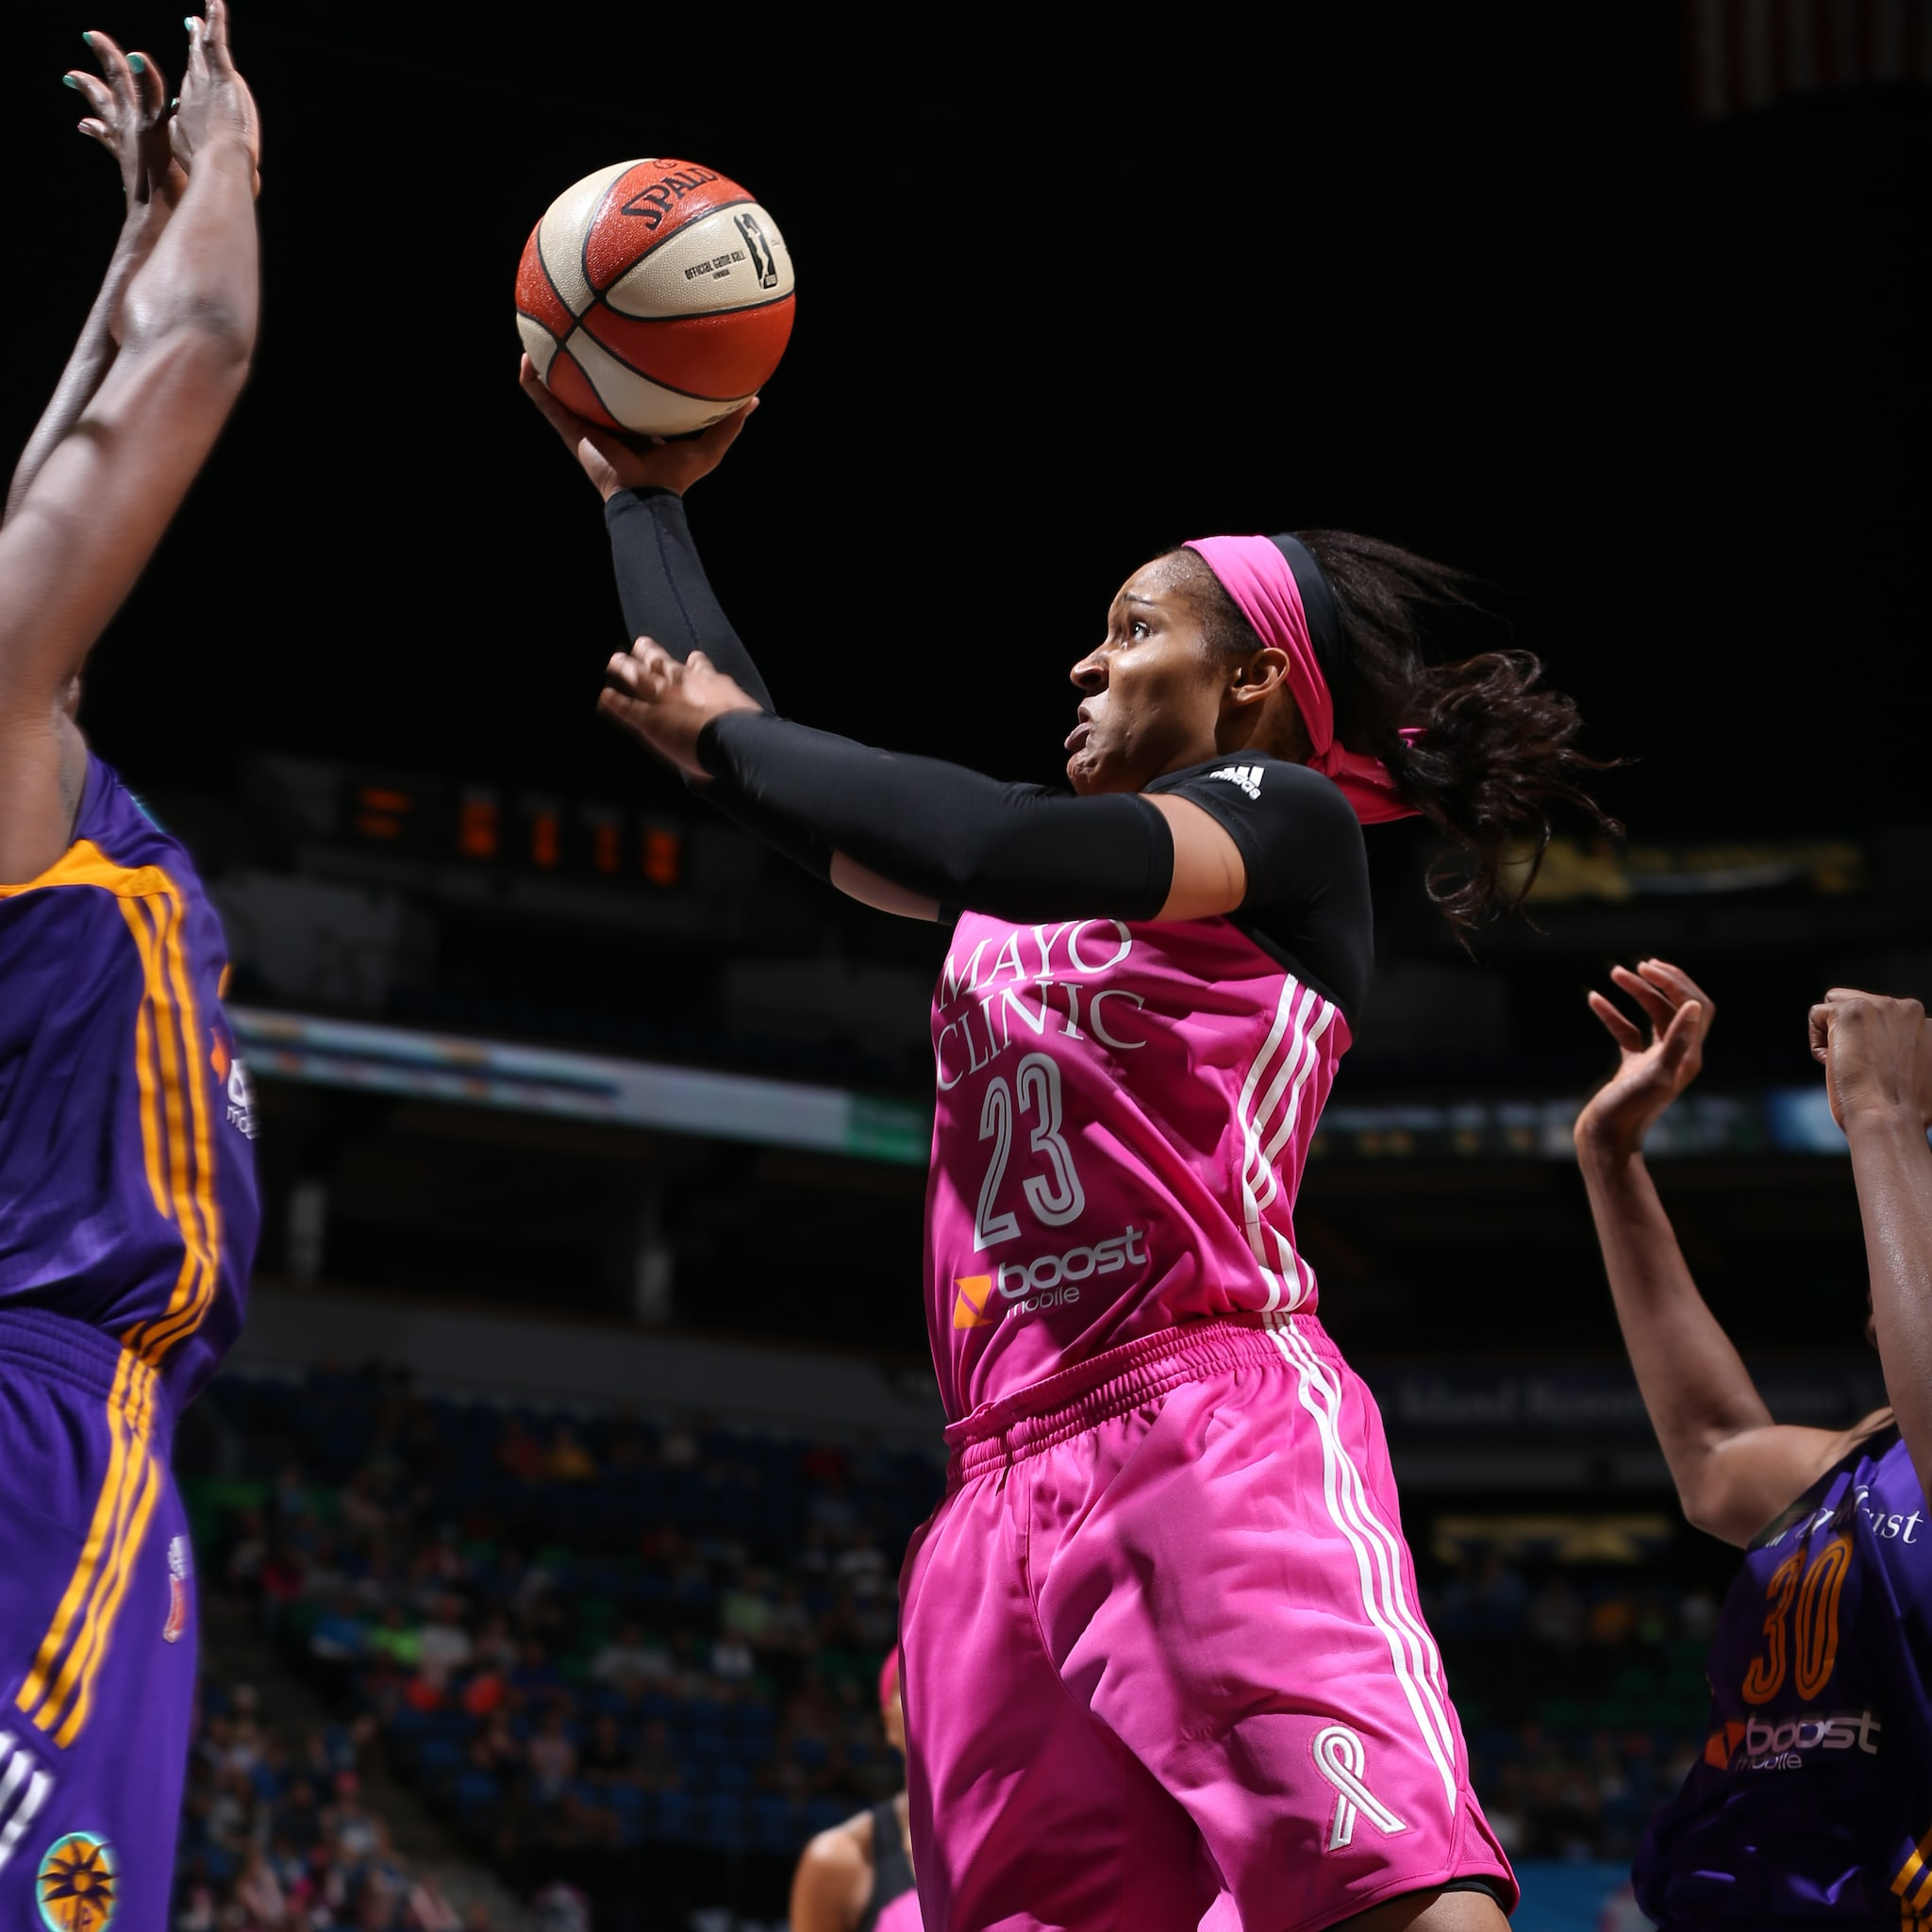 Lynx forward Maya Moore is back to her 20 point ways, scoring 20 points tonight against Los Angeles. Moore also added five rebounds, two assists and two steals.